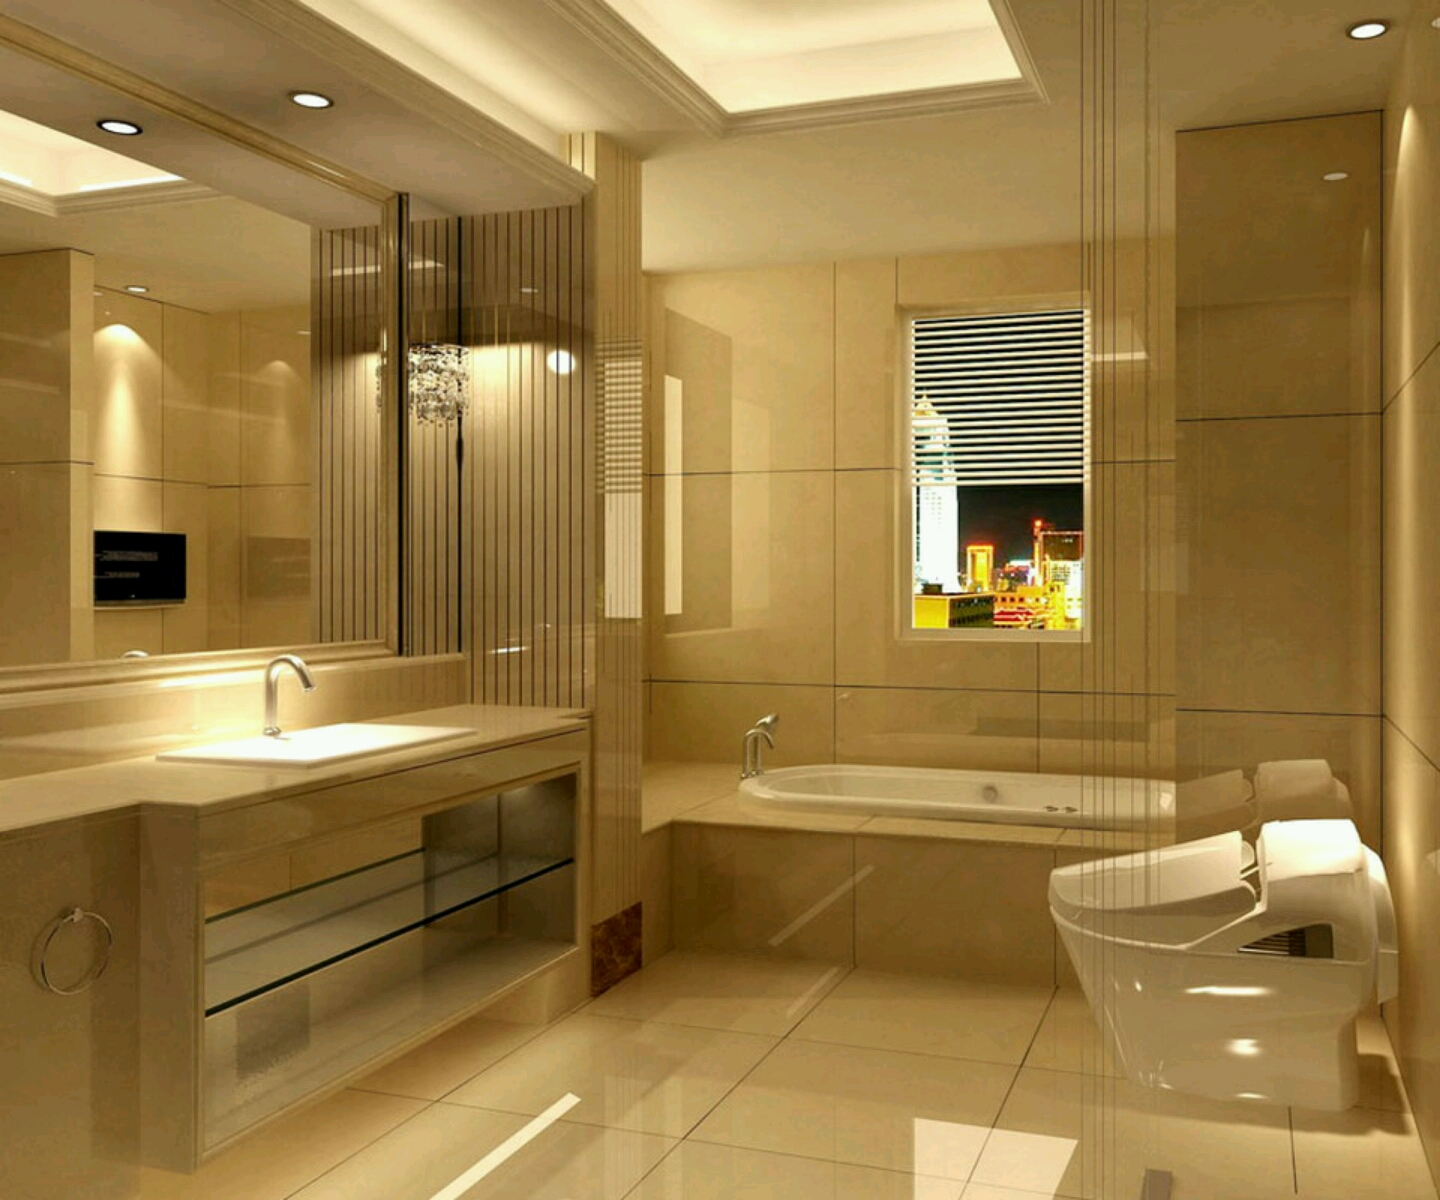 Modern bathrooms setting ideas furniture gallery for Pics of bathroom designs